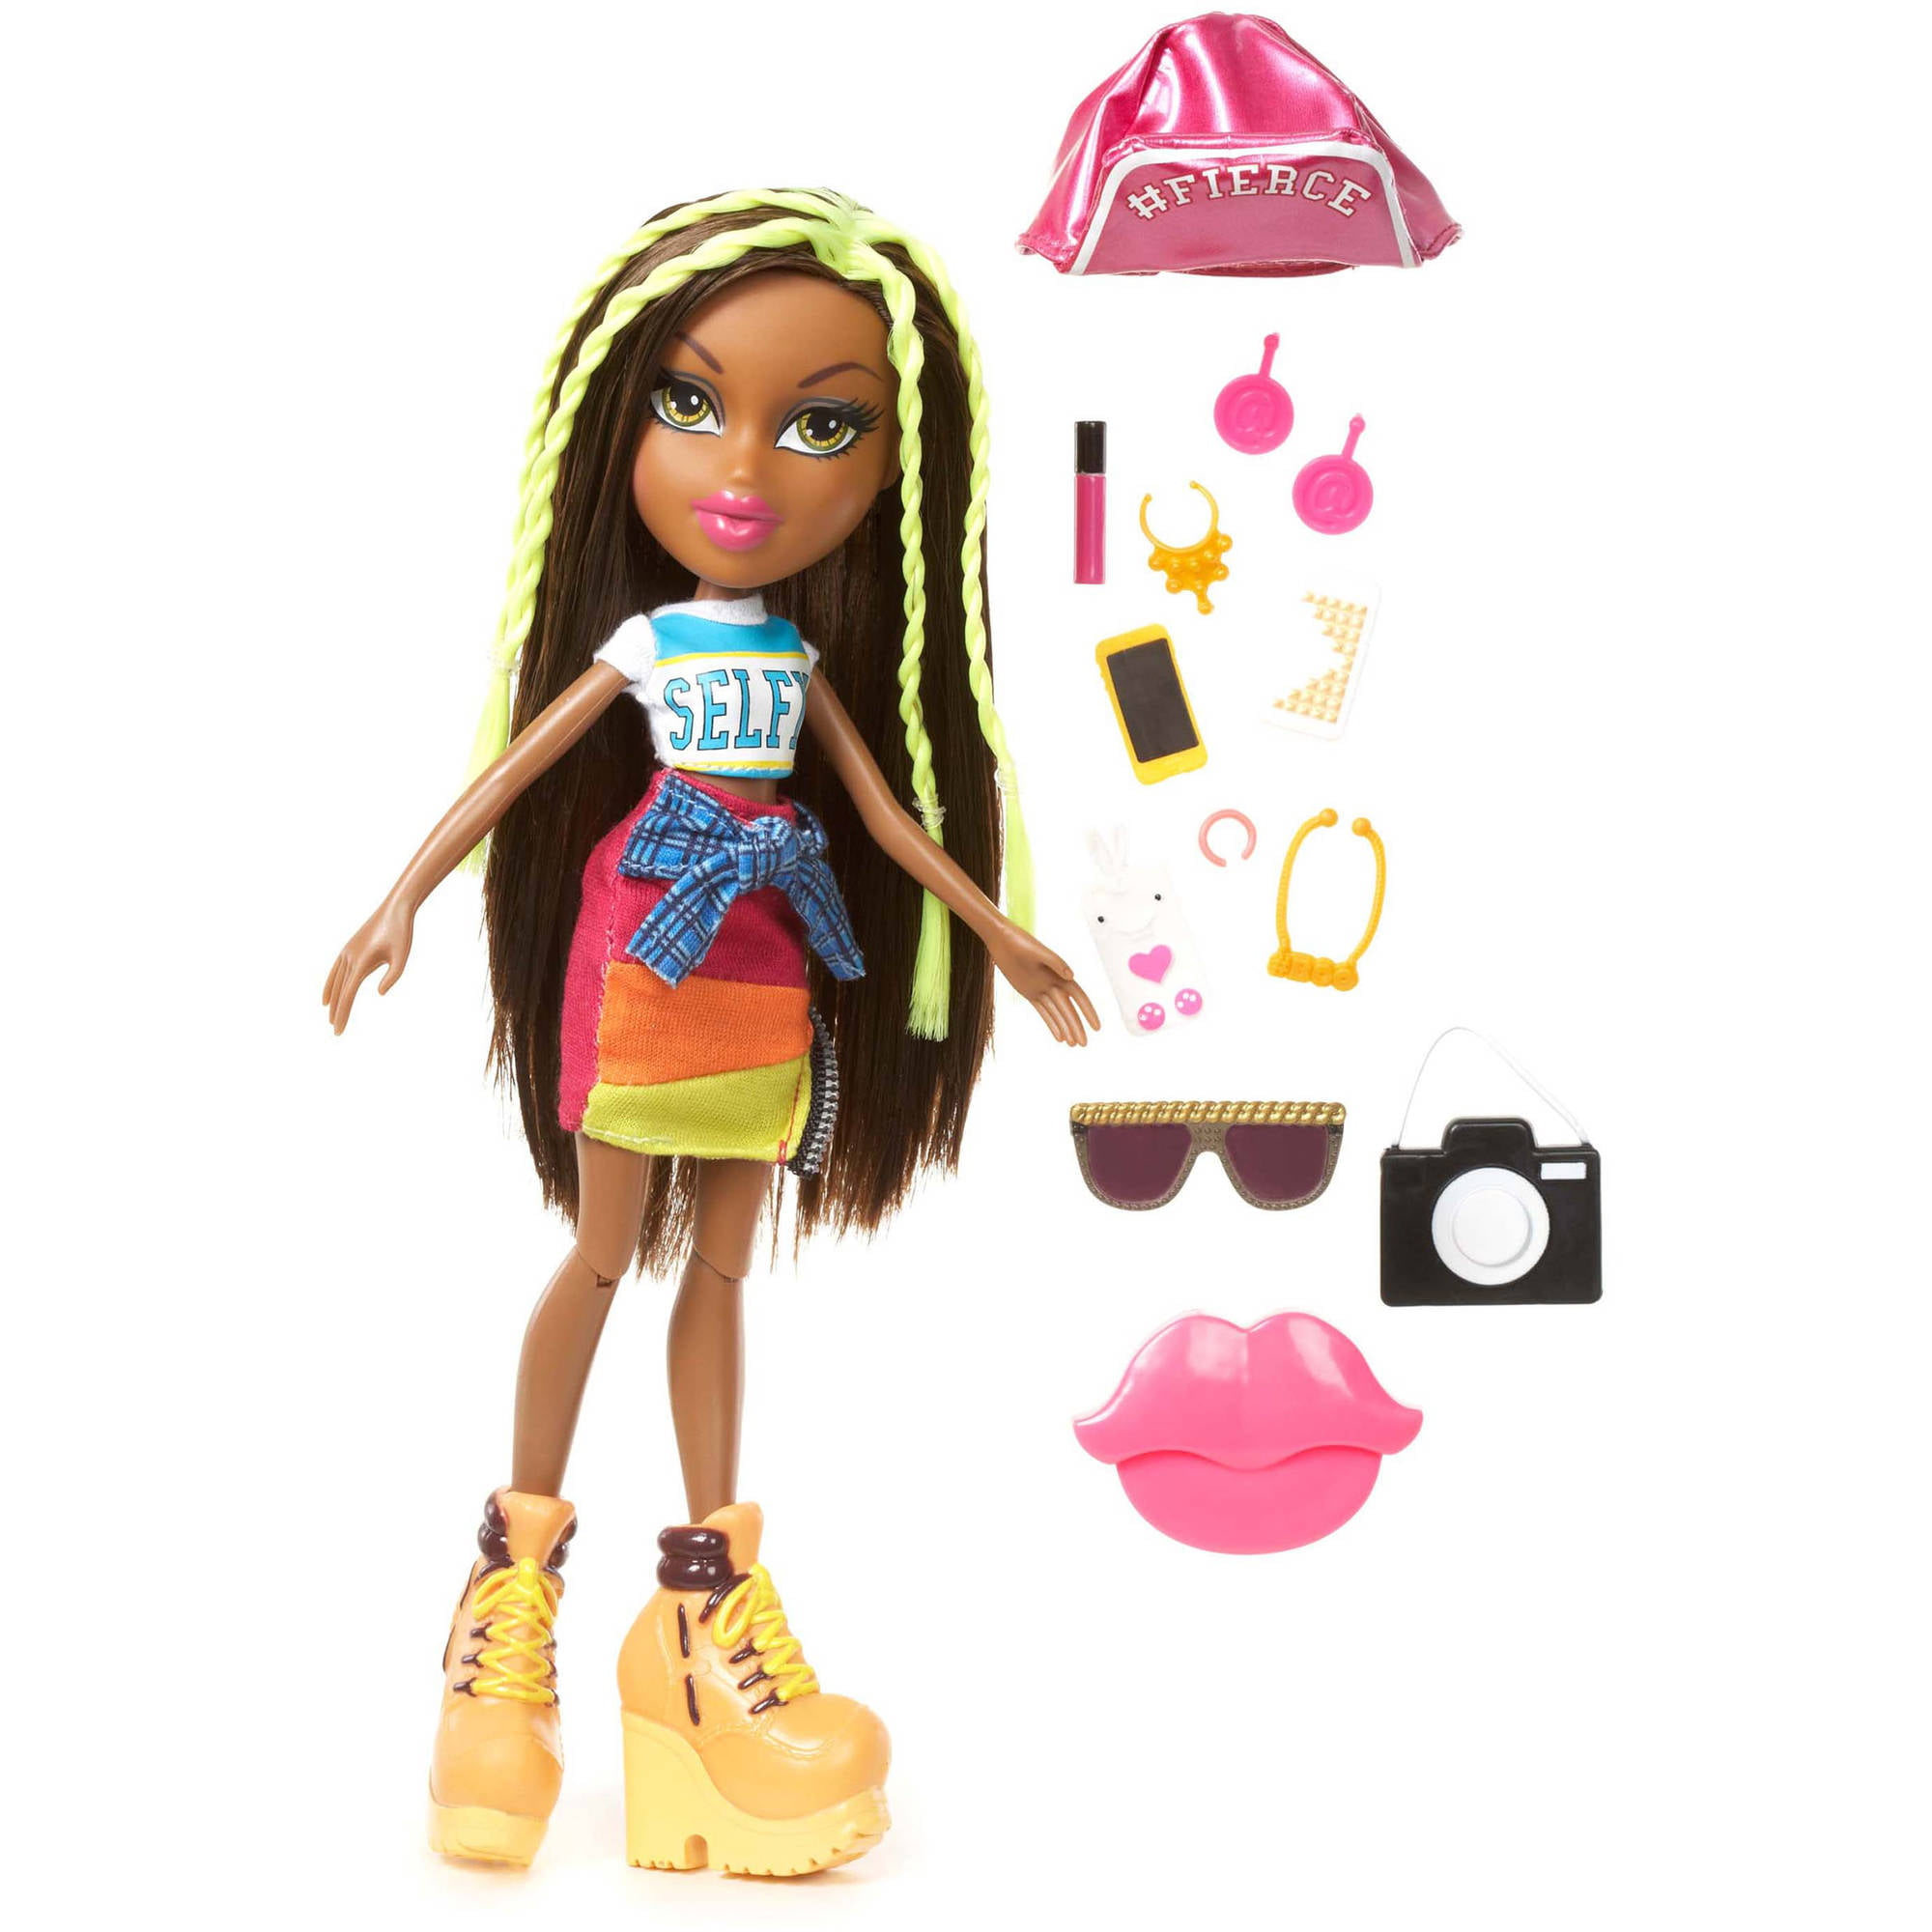 Bratz #SelfieSnaps Doll, Sasha by MGA Entertainment